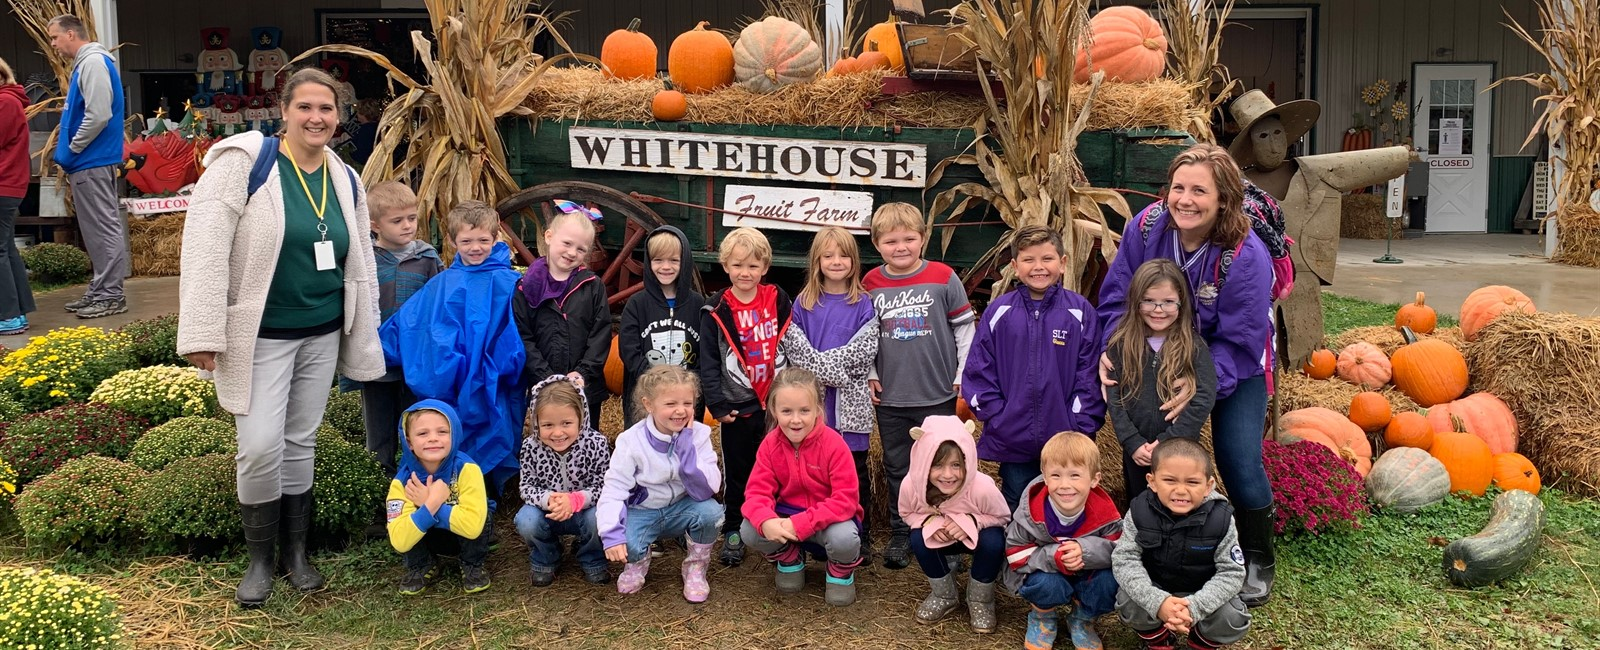 Our kindergarten classes enjoyed their apple orchard tour on a field trip to White House Fruit Farm.